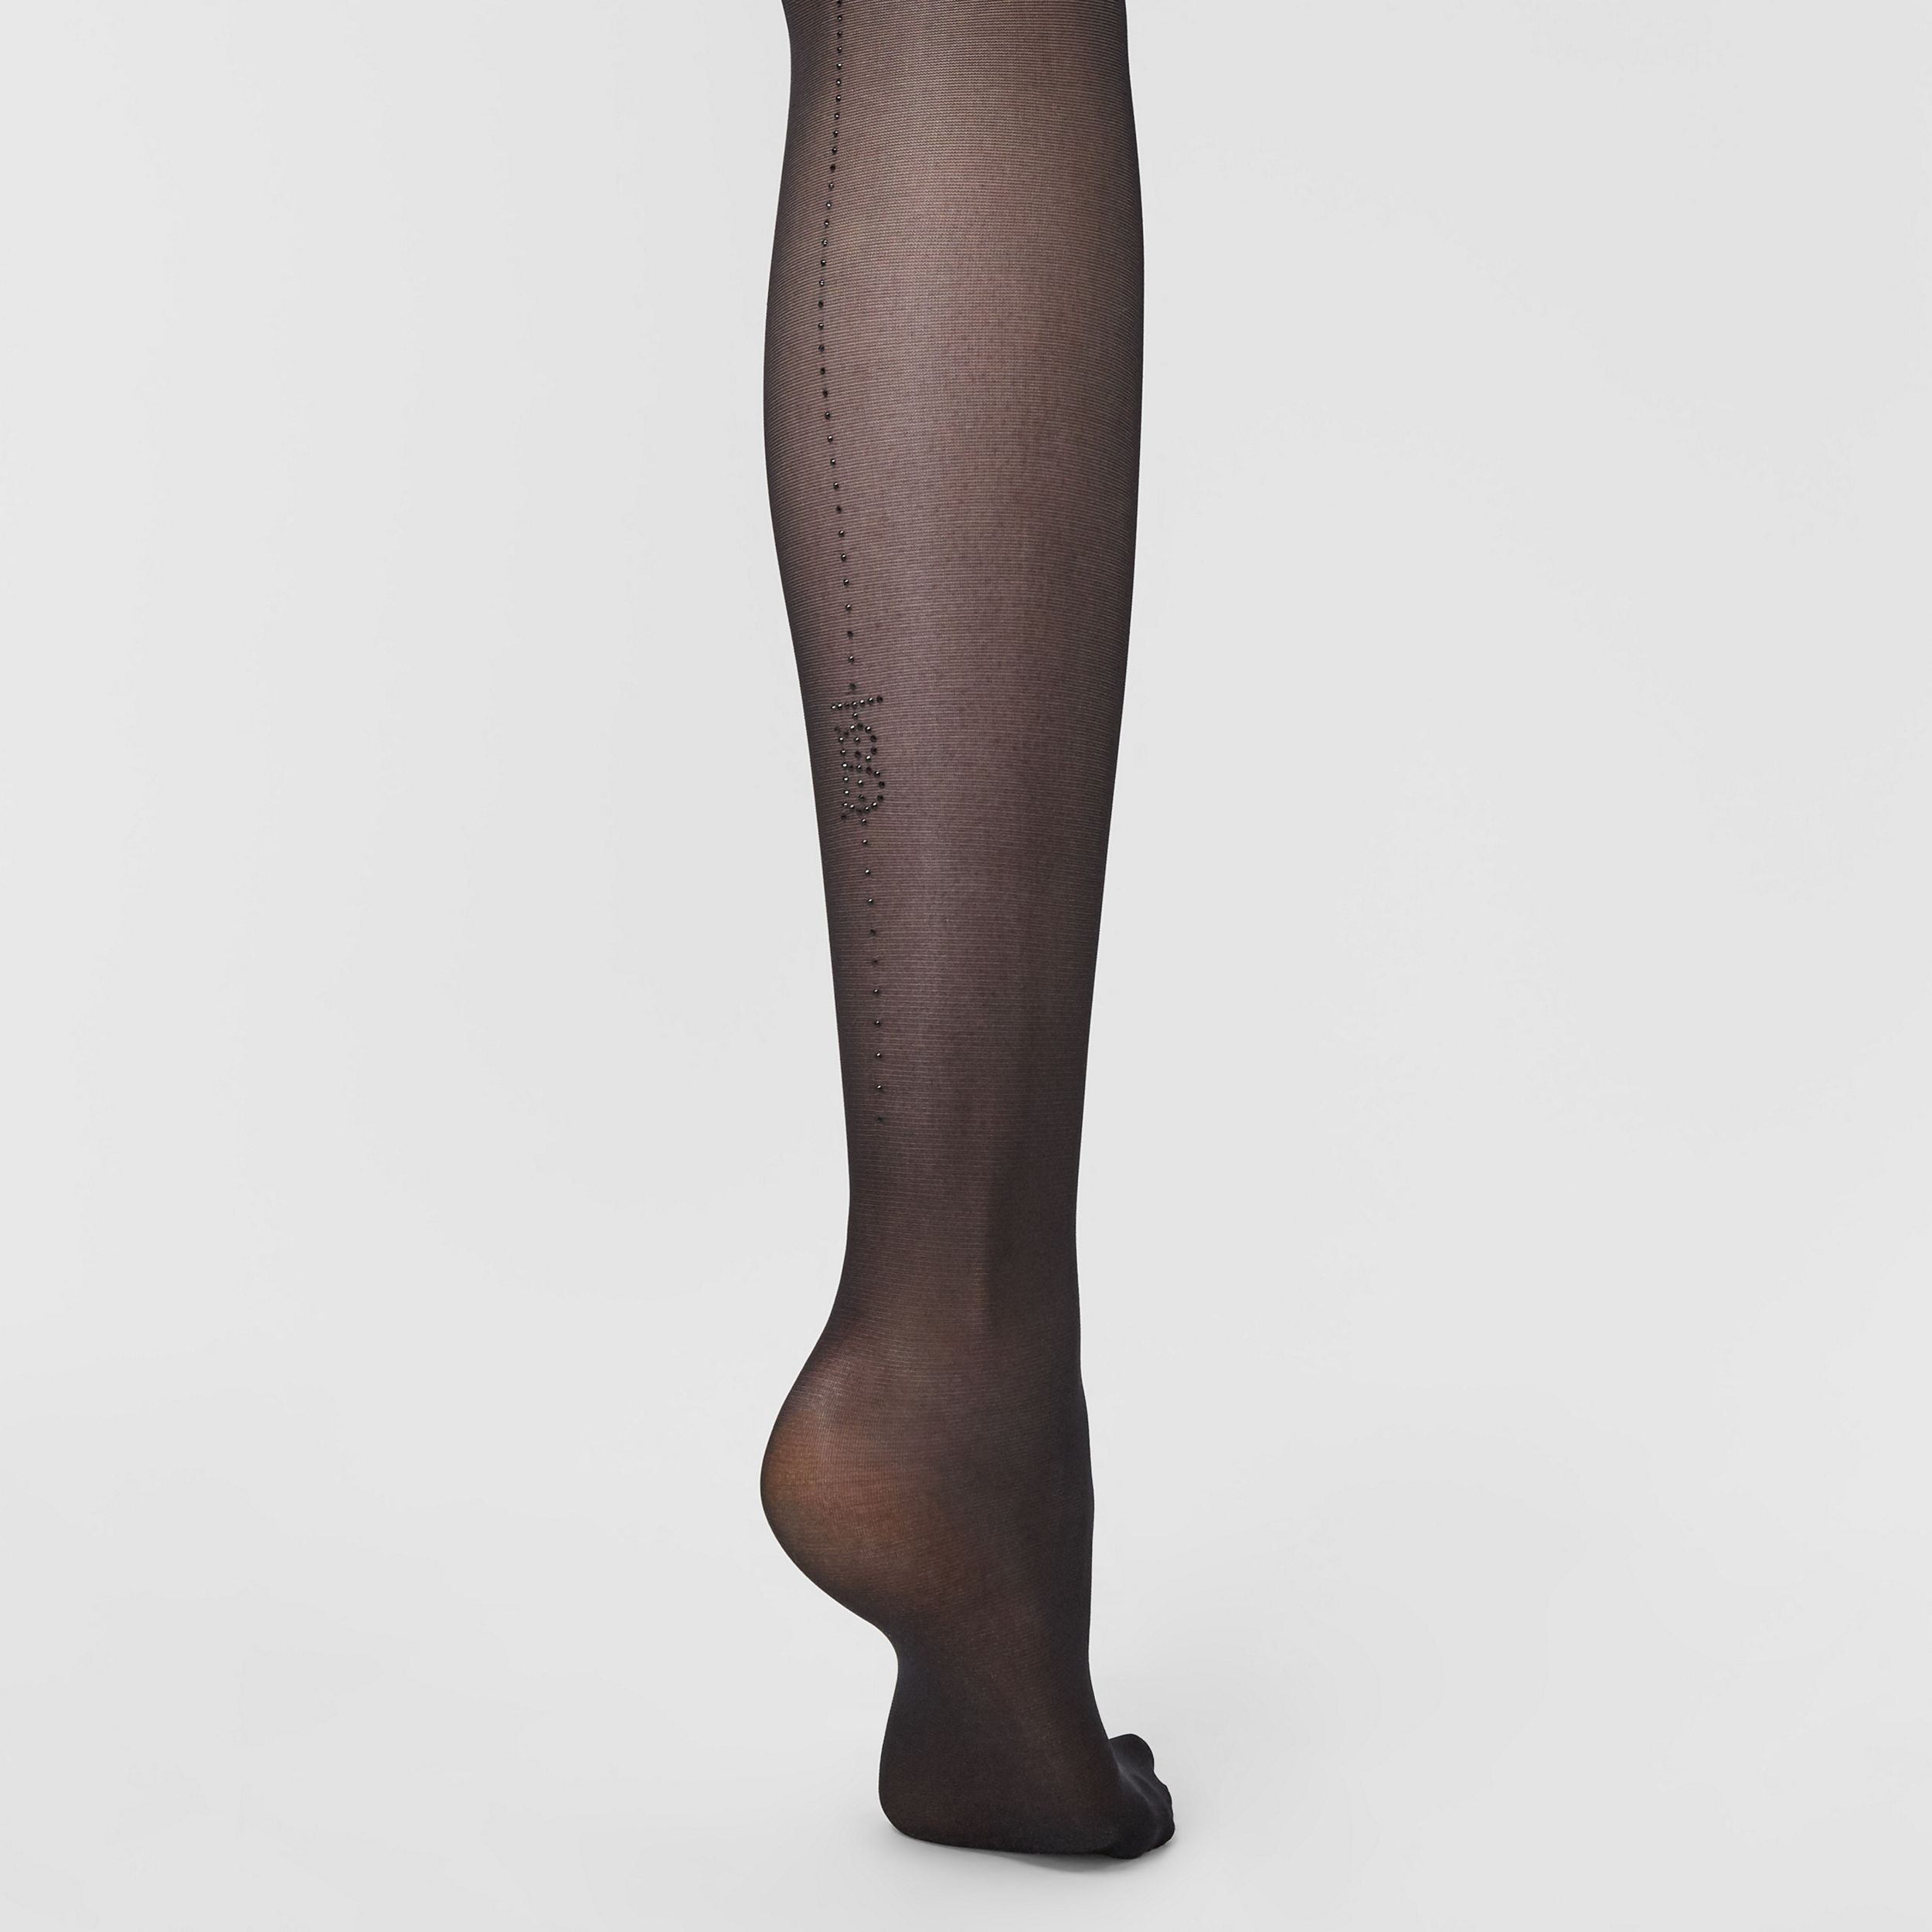 Crystal Monogram Motif Seamed Tights in Black | Burberry - 2